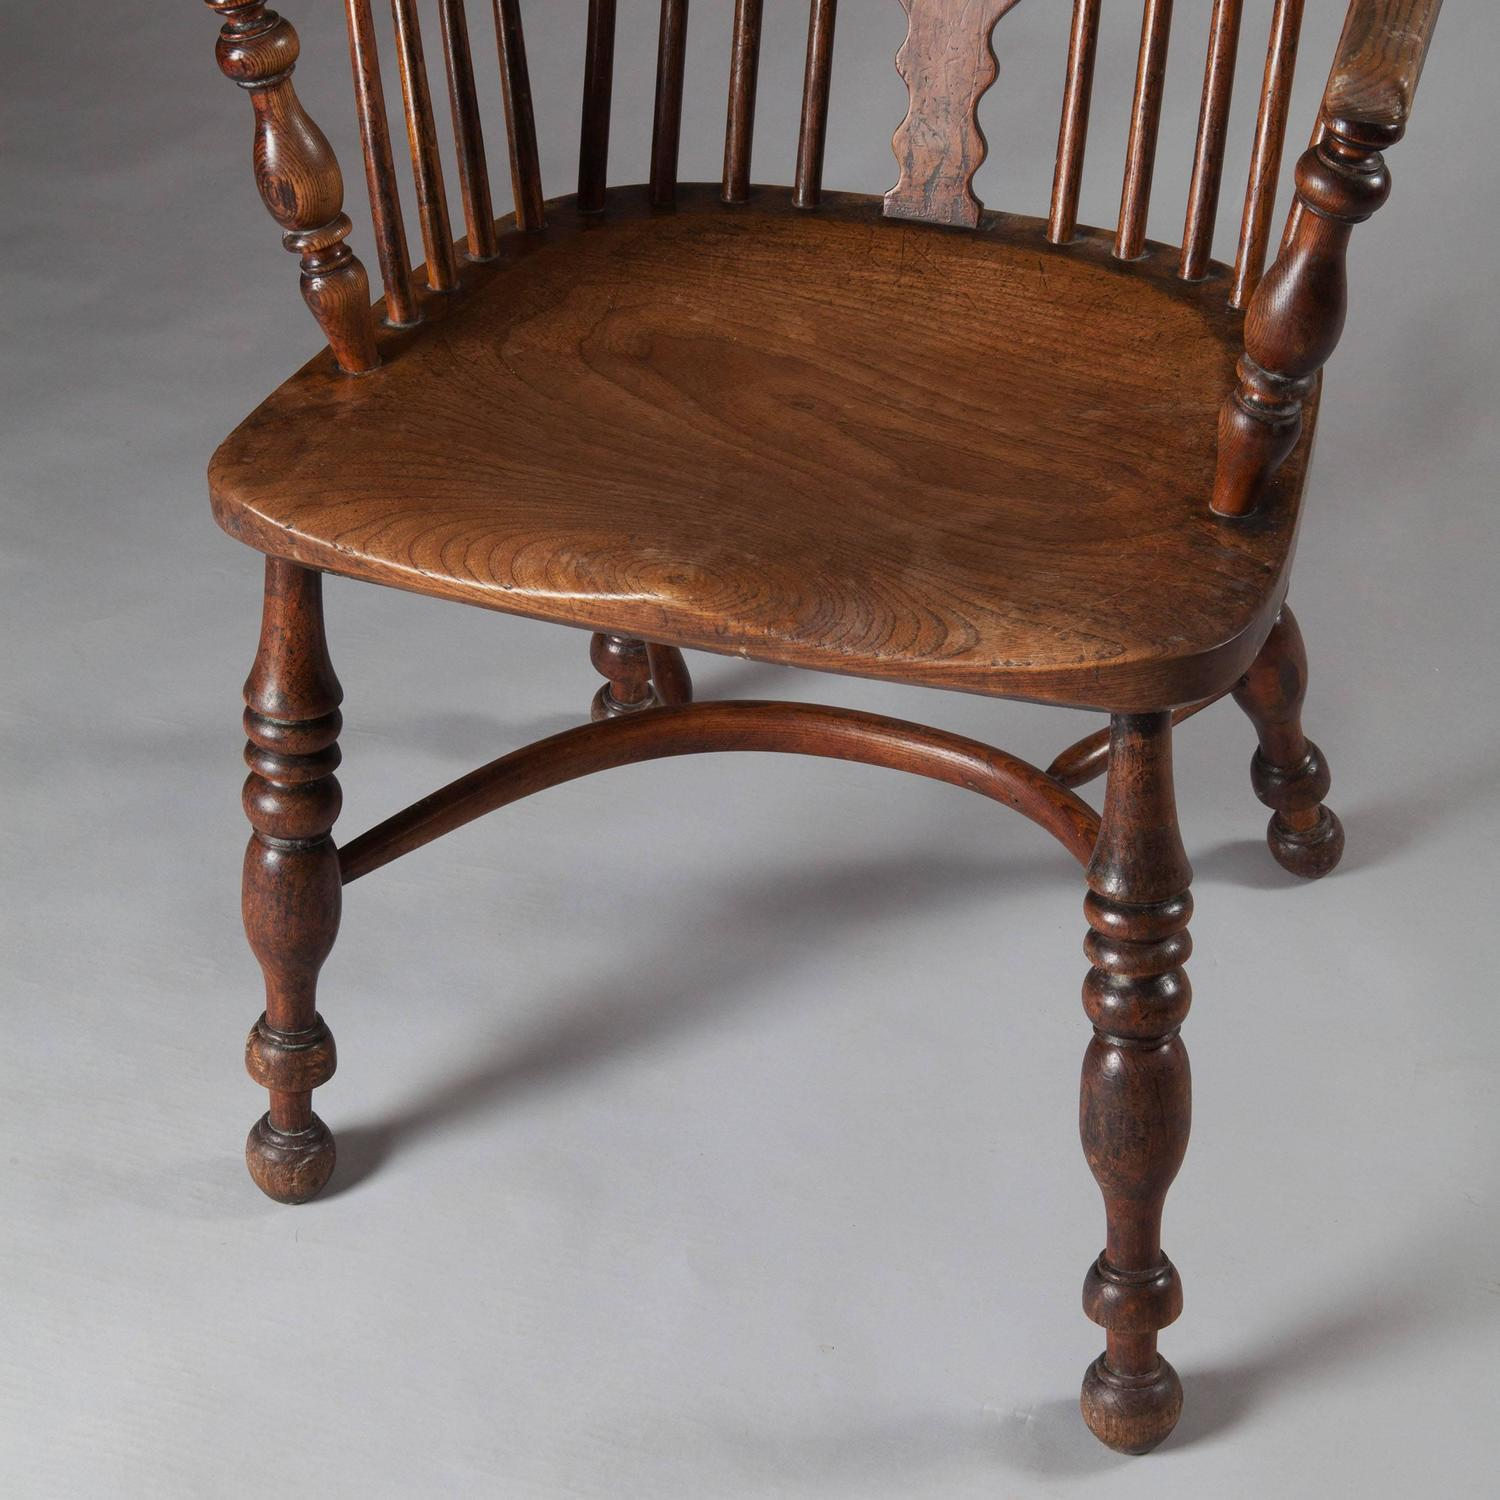 unfinished windsor chairs wheelchair toilet 19th century yew wood chair for sale at 1stdibs